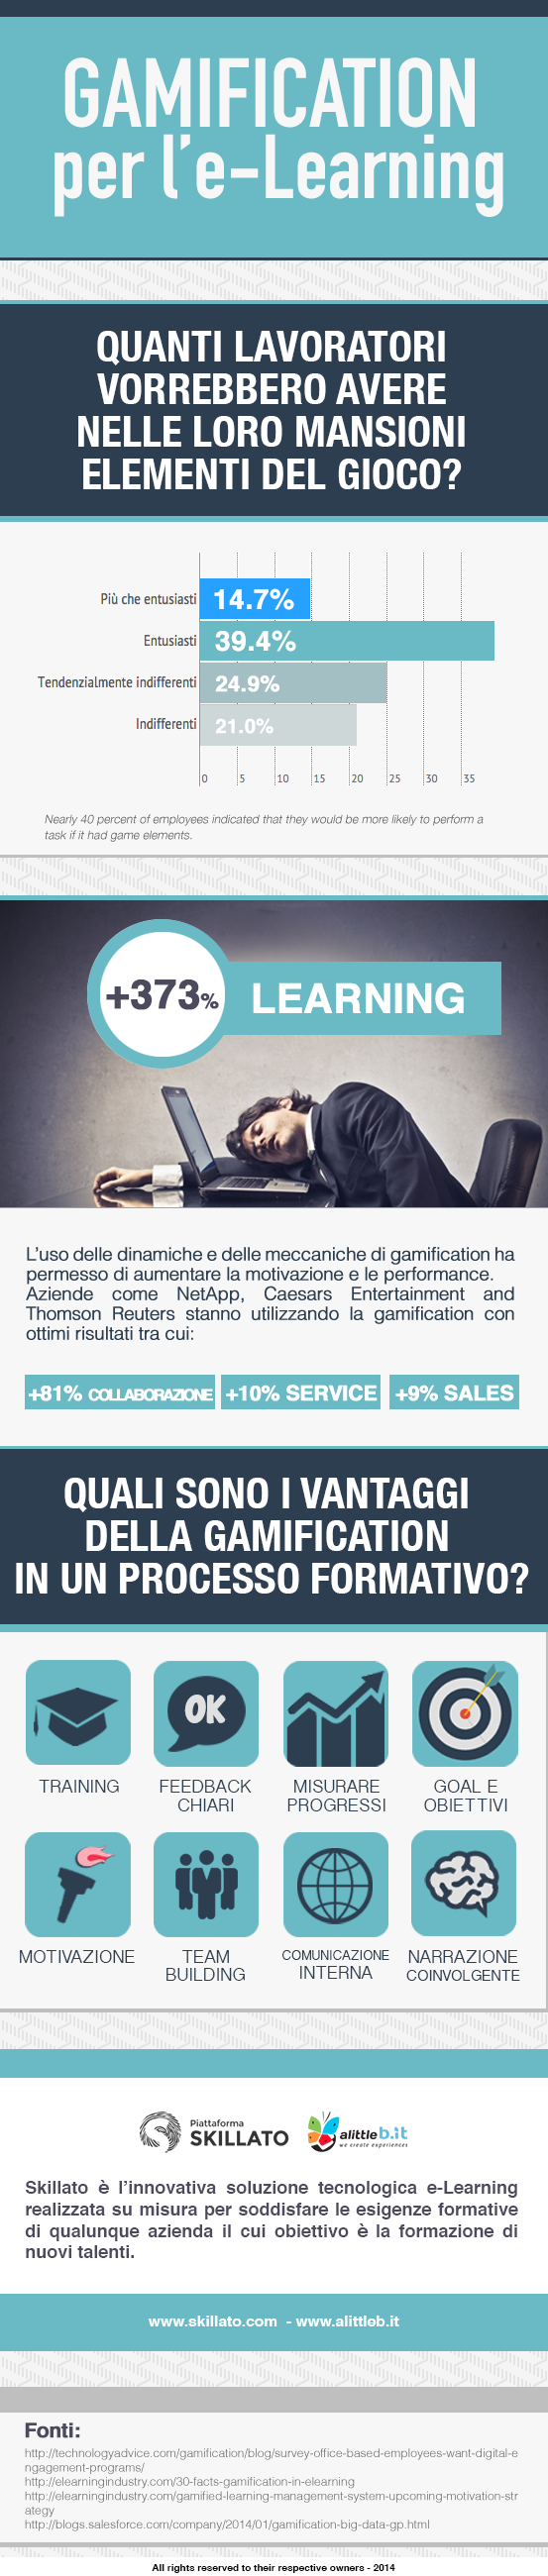 Skillato-gamification-e-learning-infografica